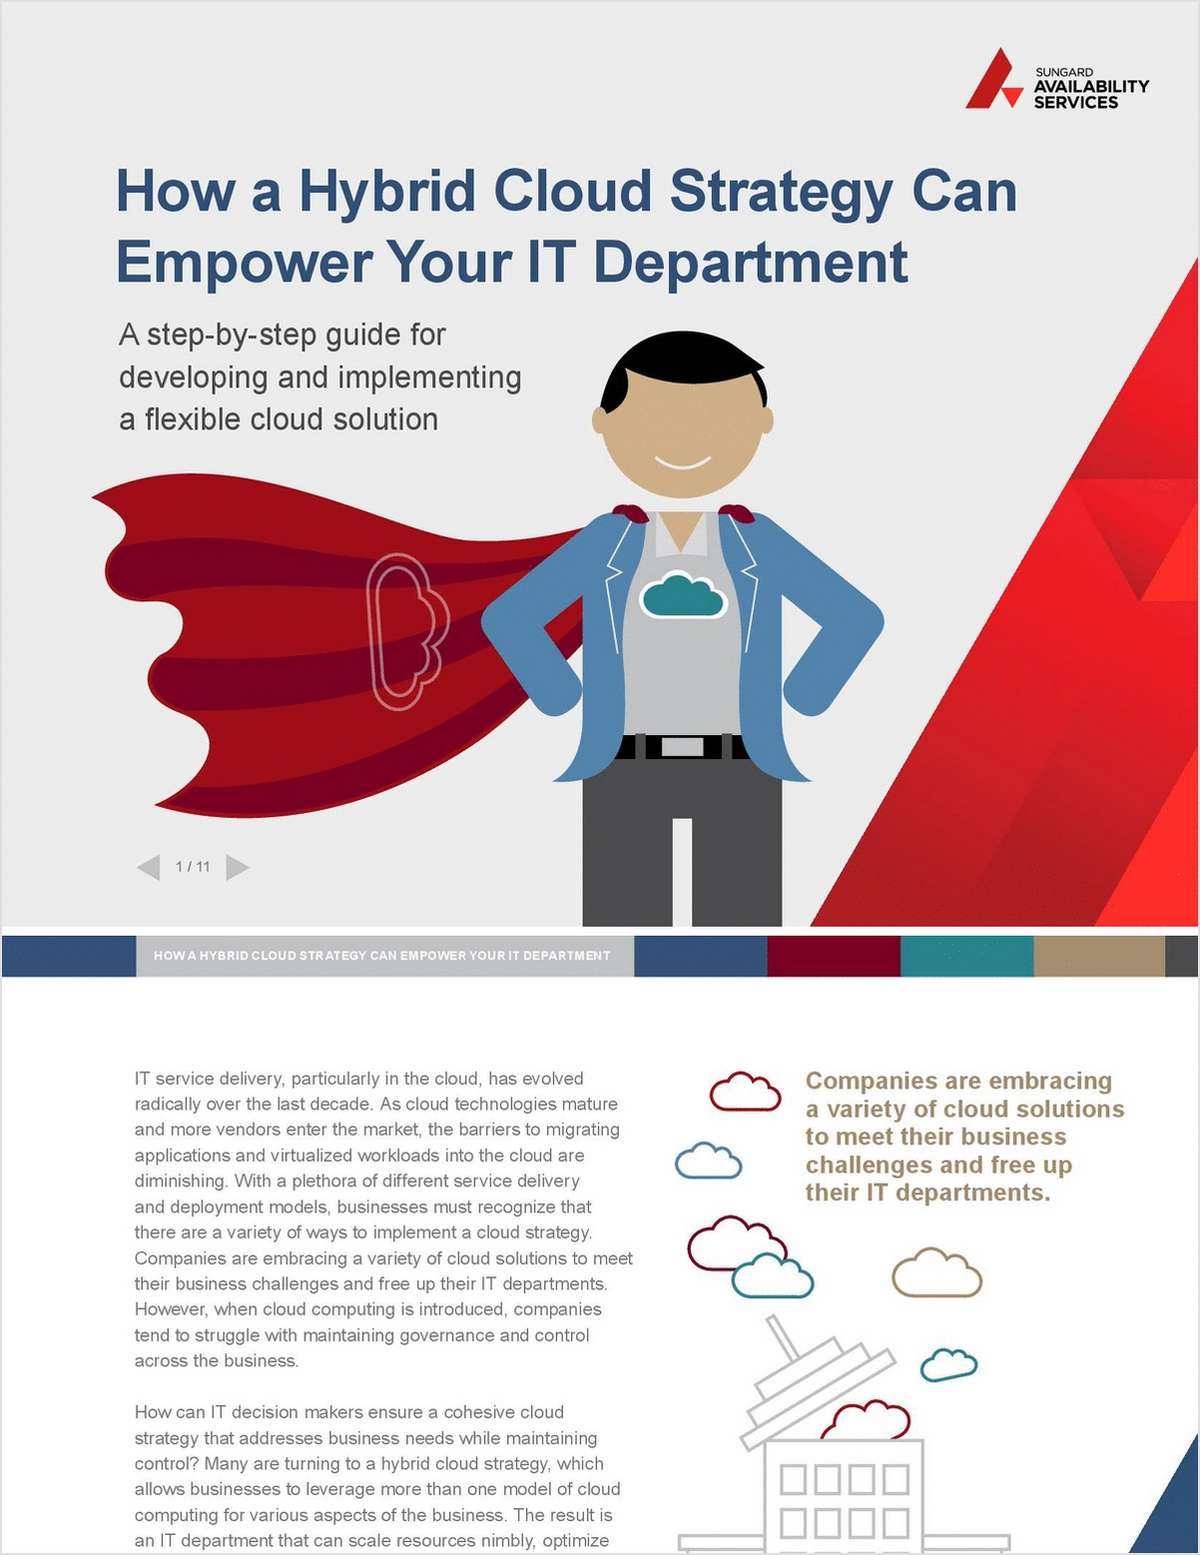 How a Hybrid Cloud Strategy Can Empower Your IT Department